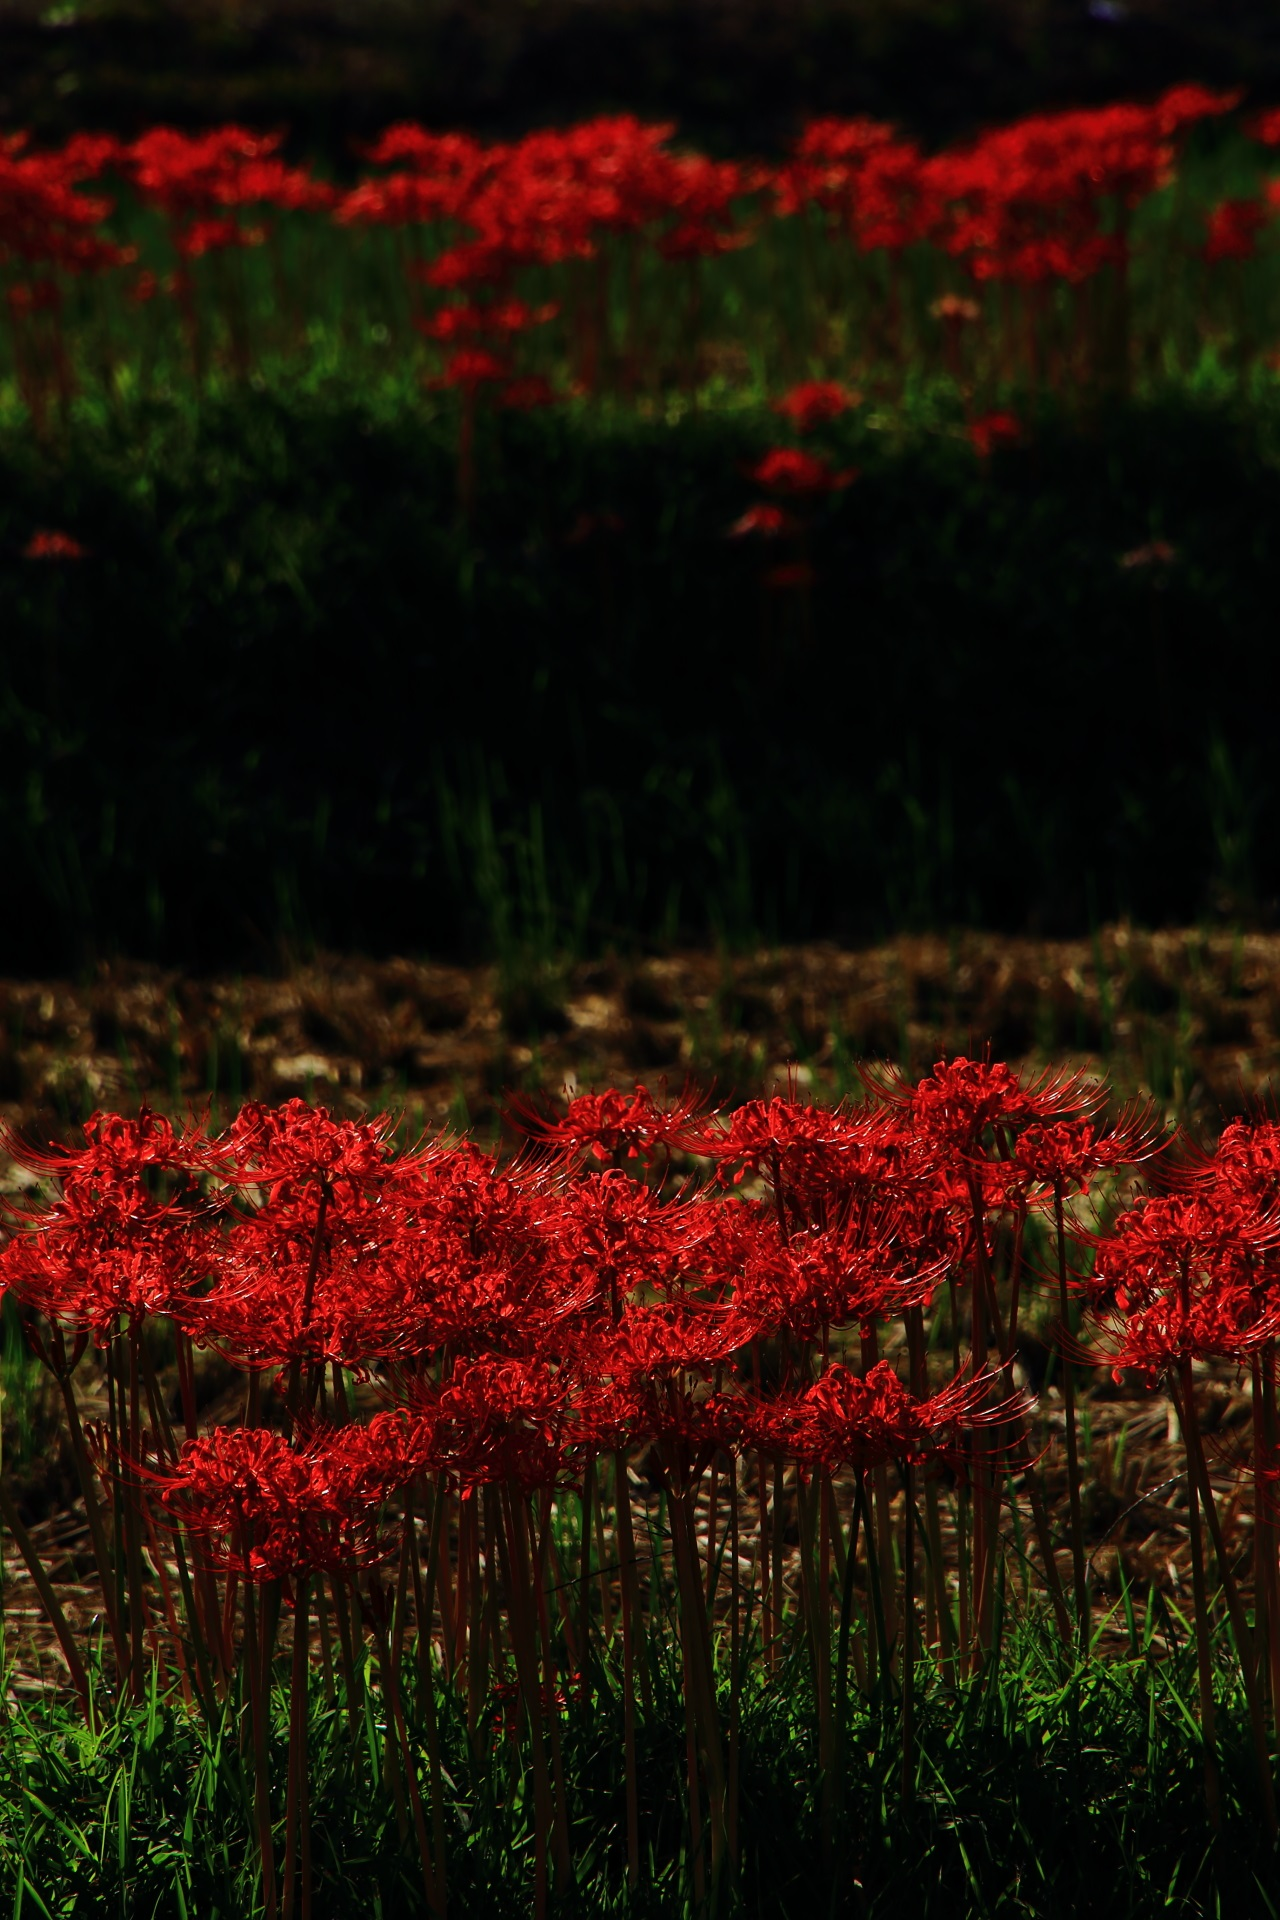 Sagano in Kyoto, famous for cluster amaryllis